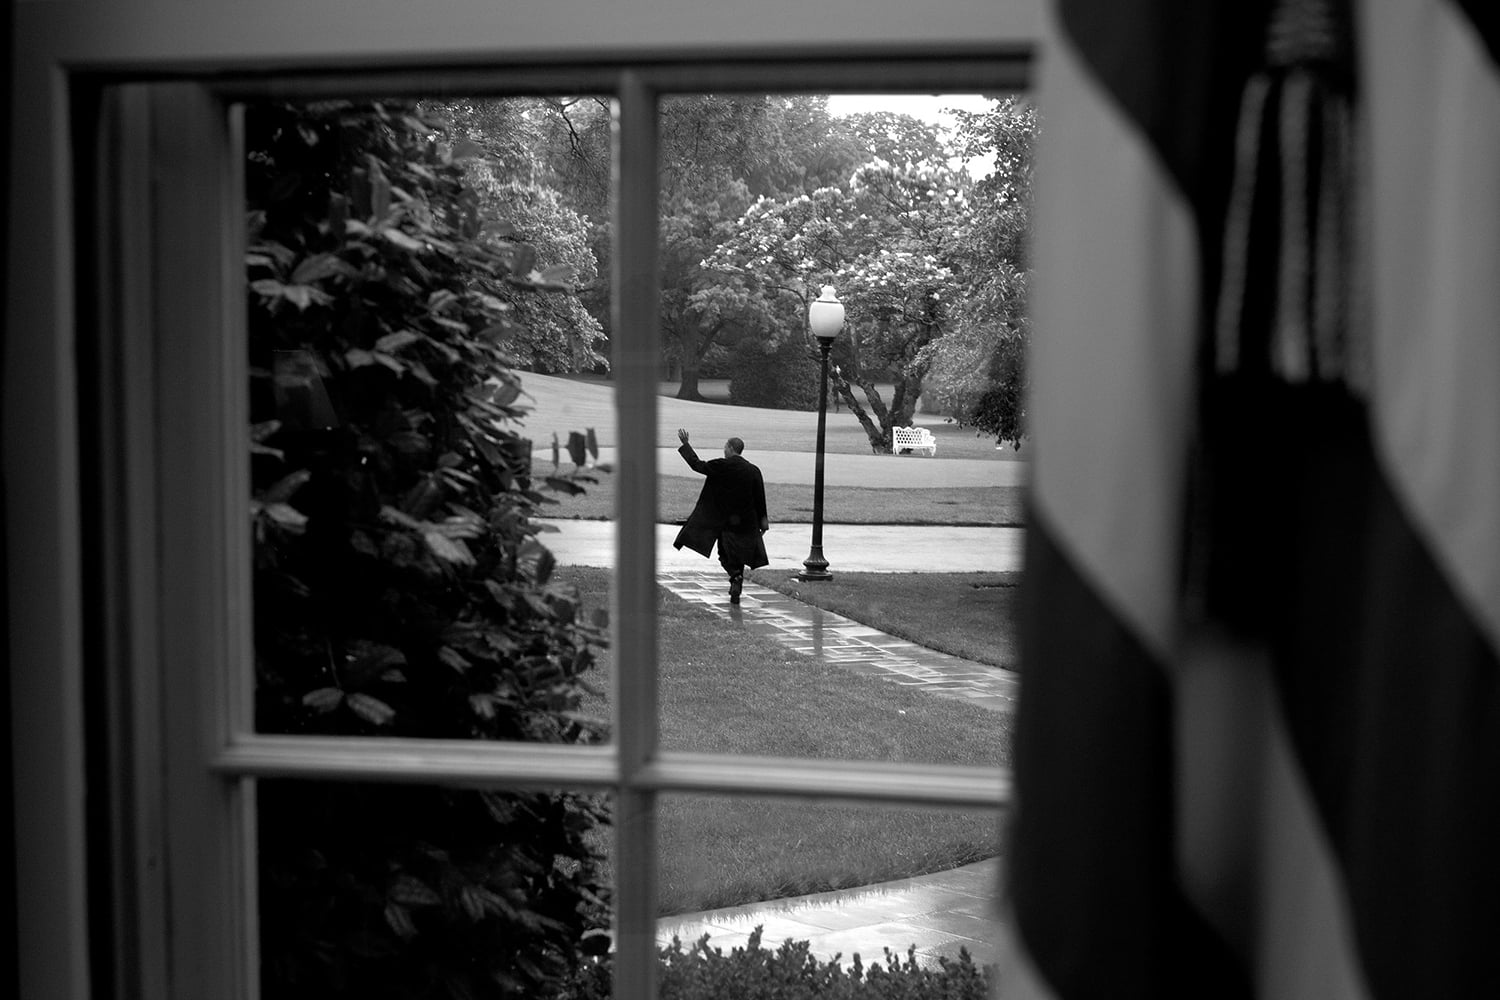 President Barack Obama walks from the Oval Office to Marine One as he travels to New York May 14, 2012. (Official White House Photo by Chuck Kennedy).